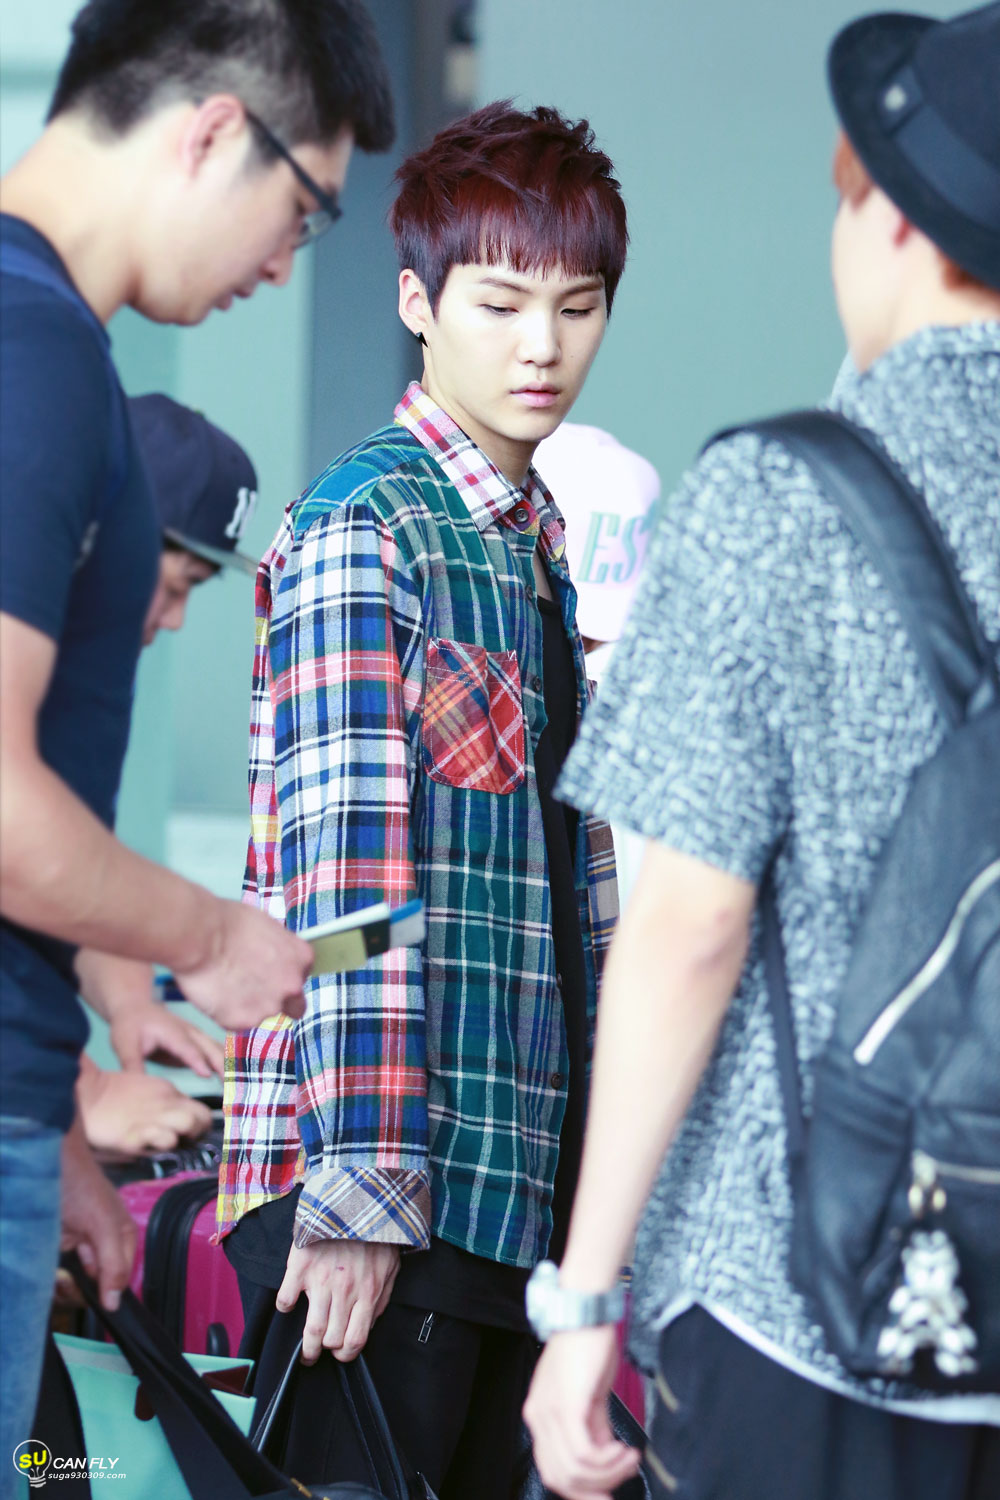 See The 7 Best Outfits From Idols With Checkered Shirts